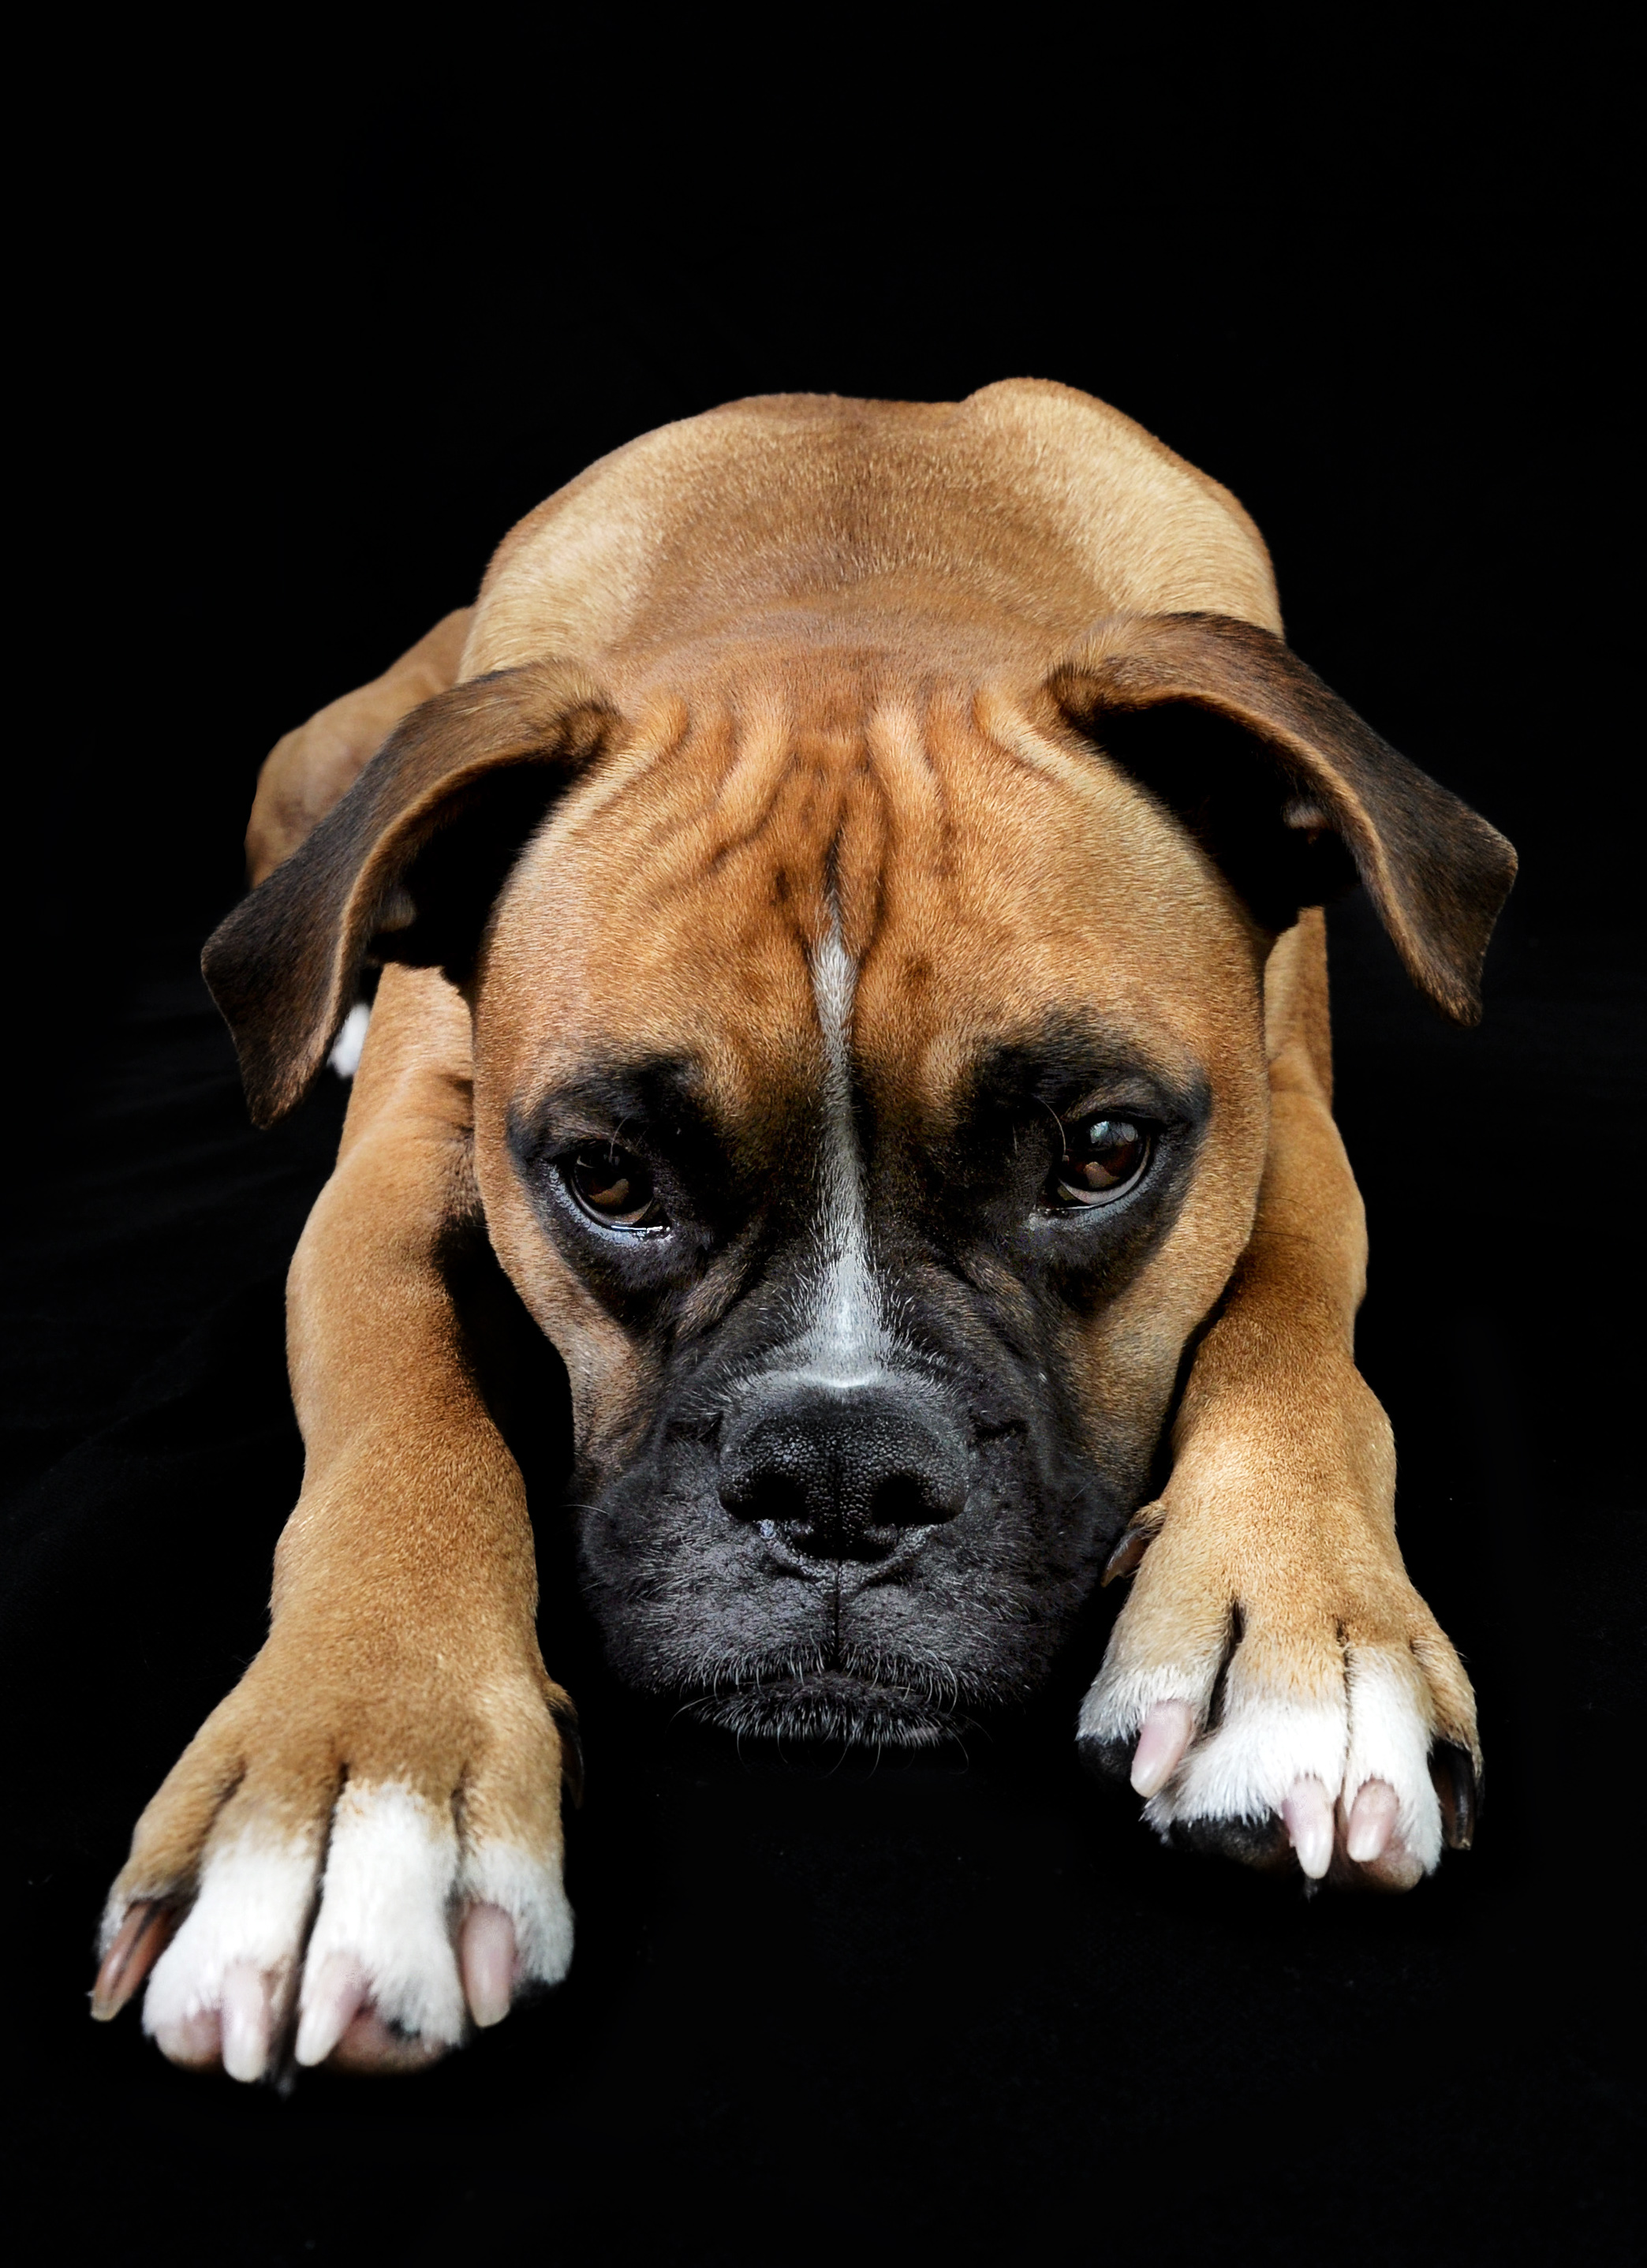 Dog portrait, Angry, Face, Studio, Sad, HQ Photo